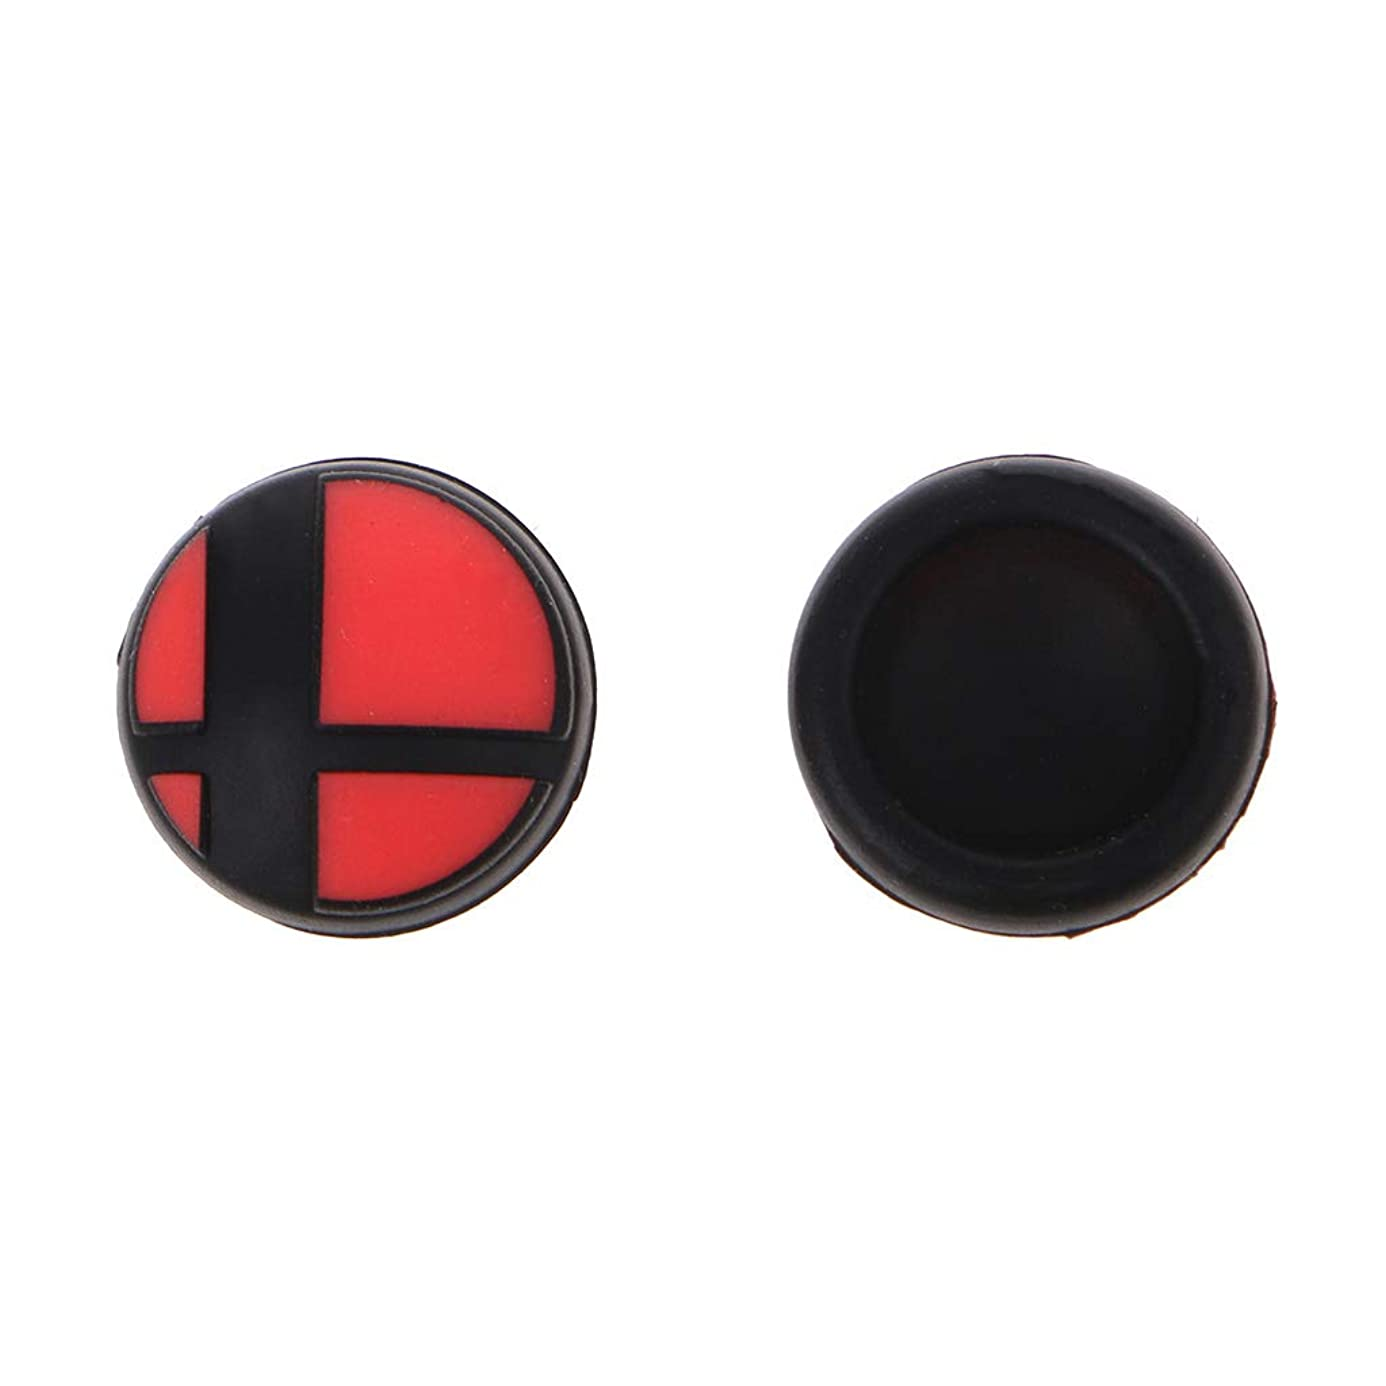 huanban072 1 Pair Analog Thumb Stick Silicone Skin Grips Anti-Skid Joy Con Caps Thumbstick Cap Replacement for Nintendo Switch NS Console Controller